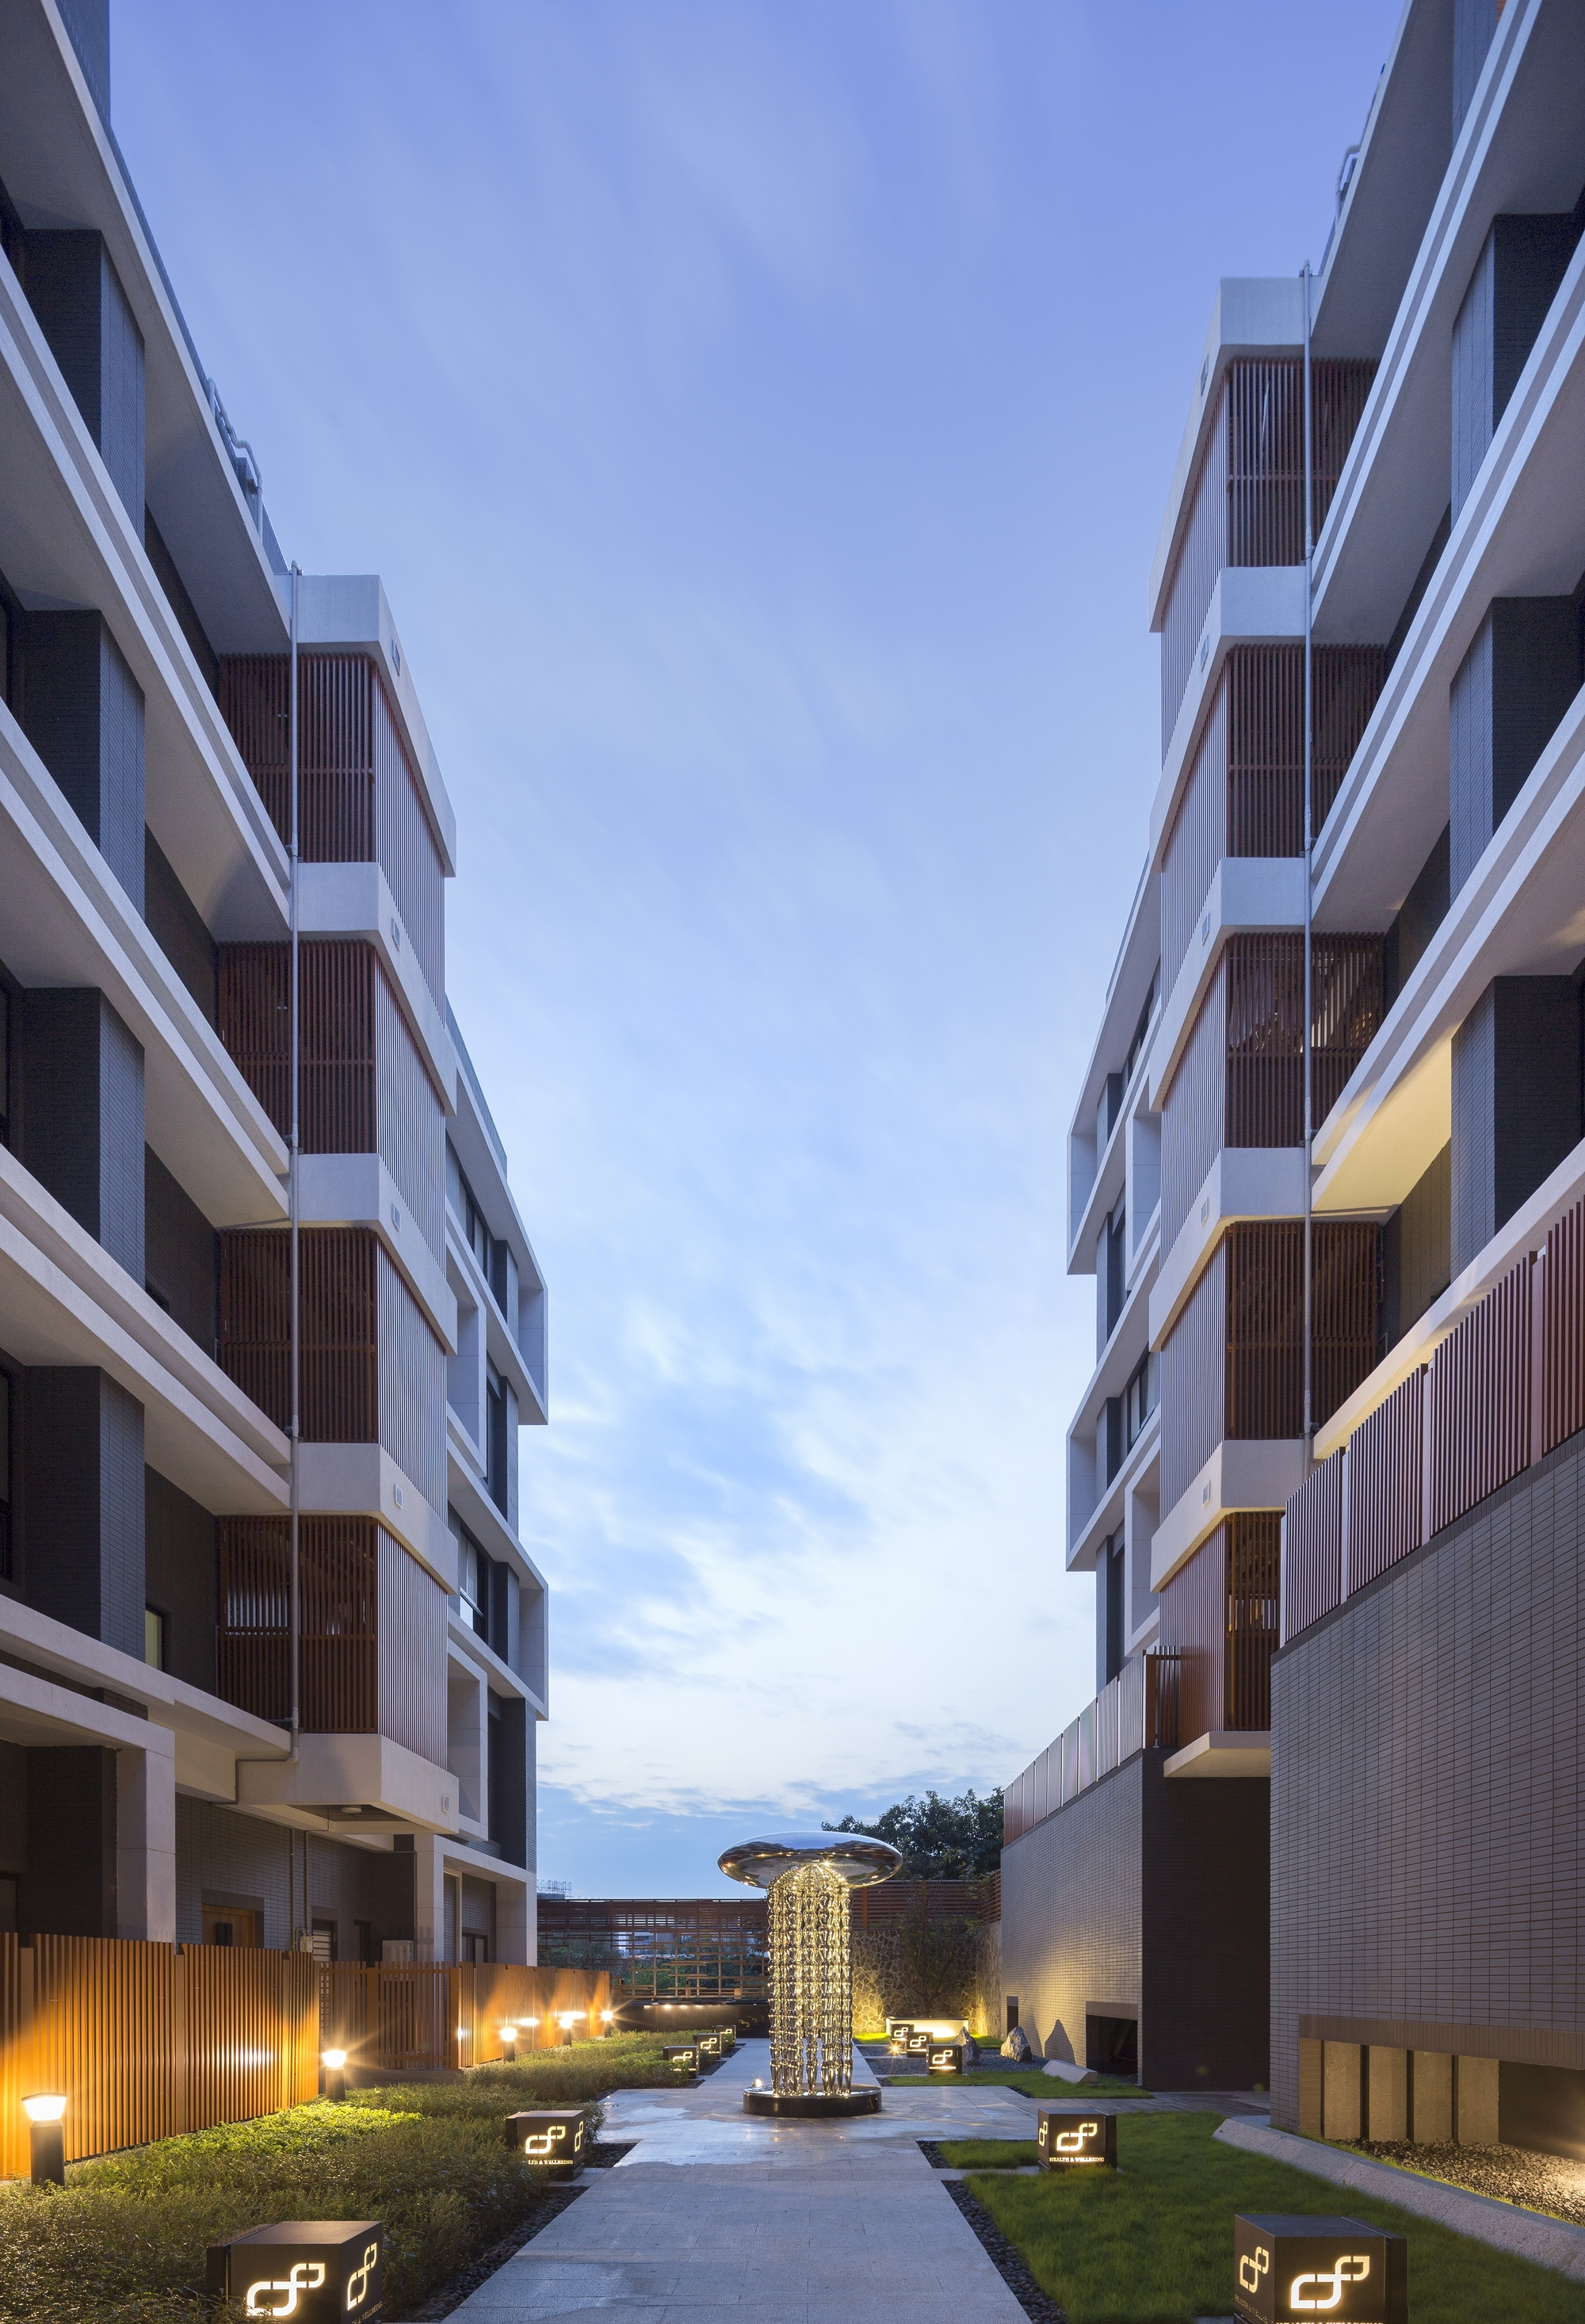 Apartment Complex apartment complex in qiyan / lrh architects | archdaily